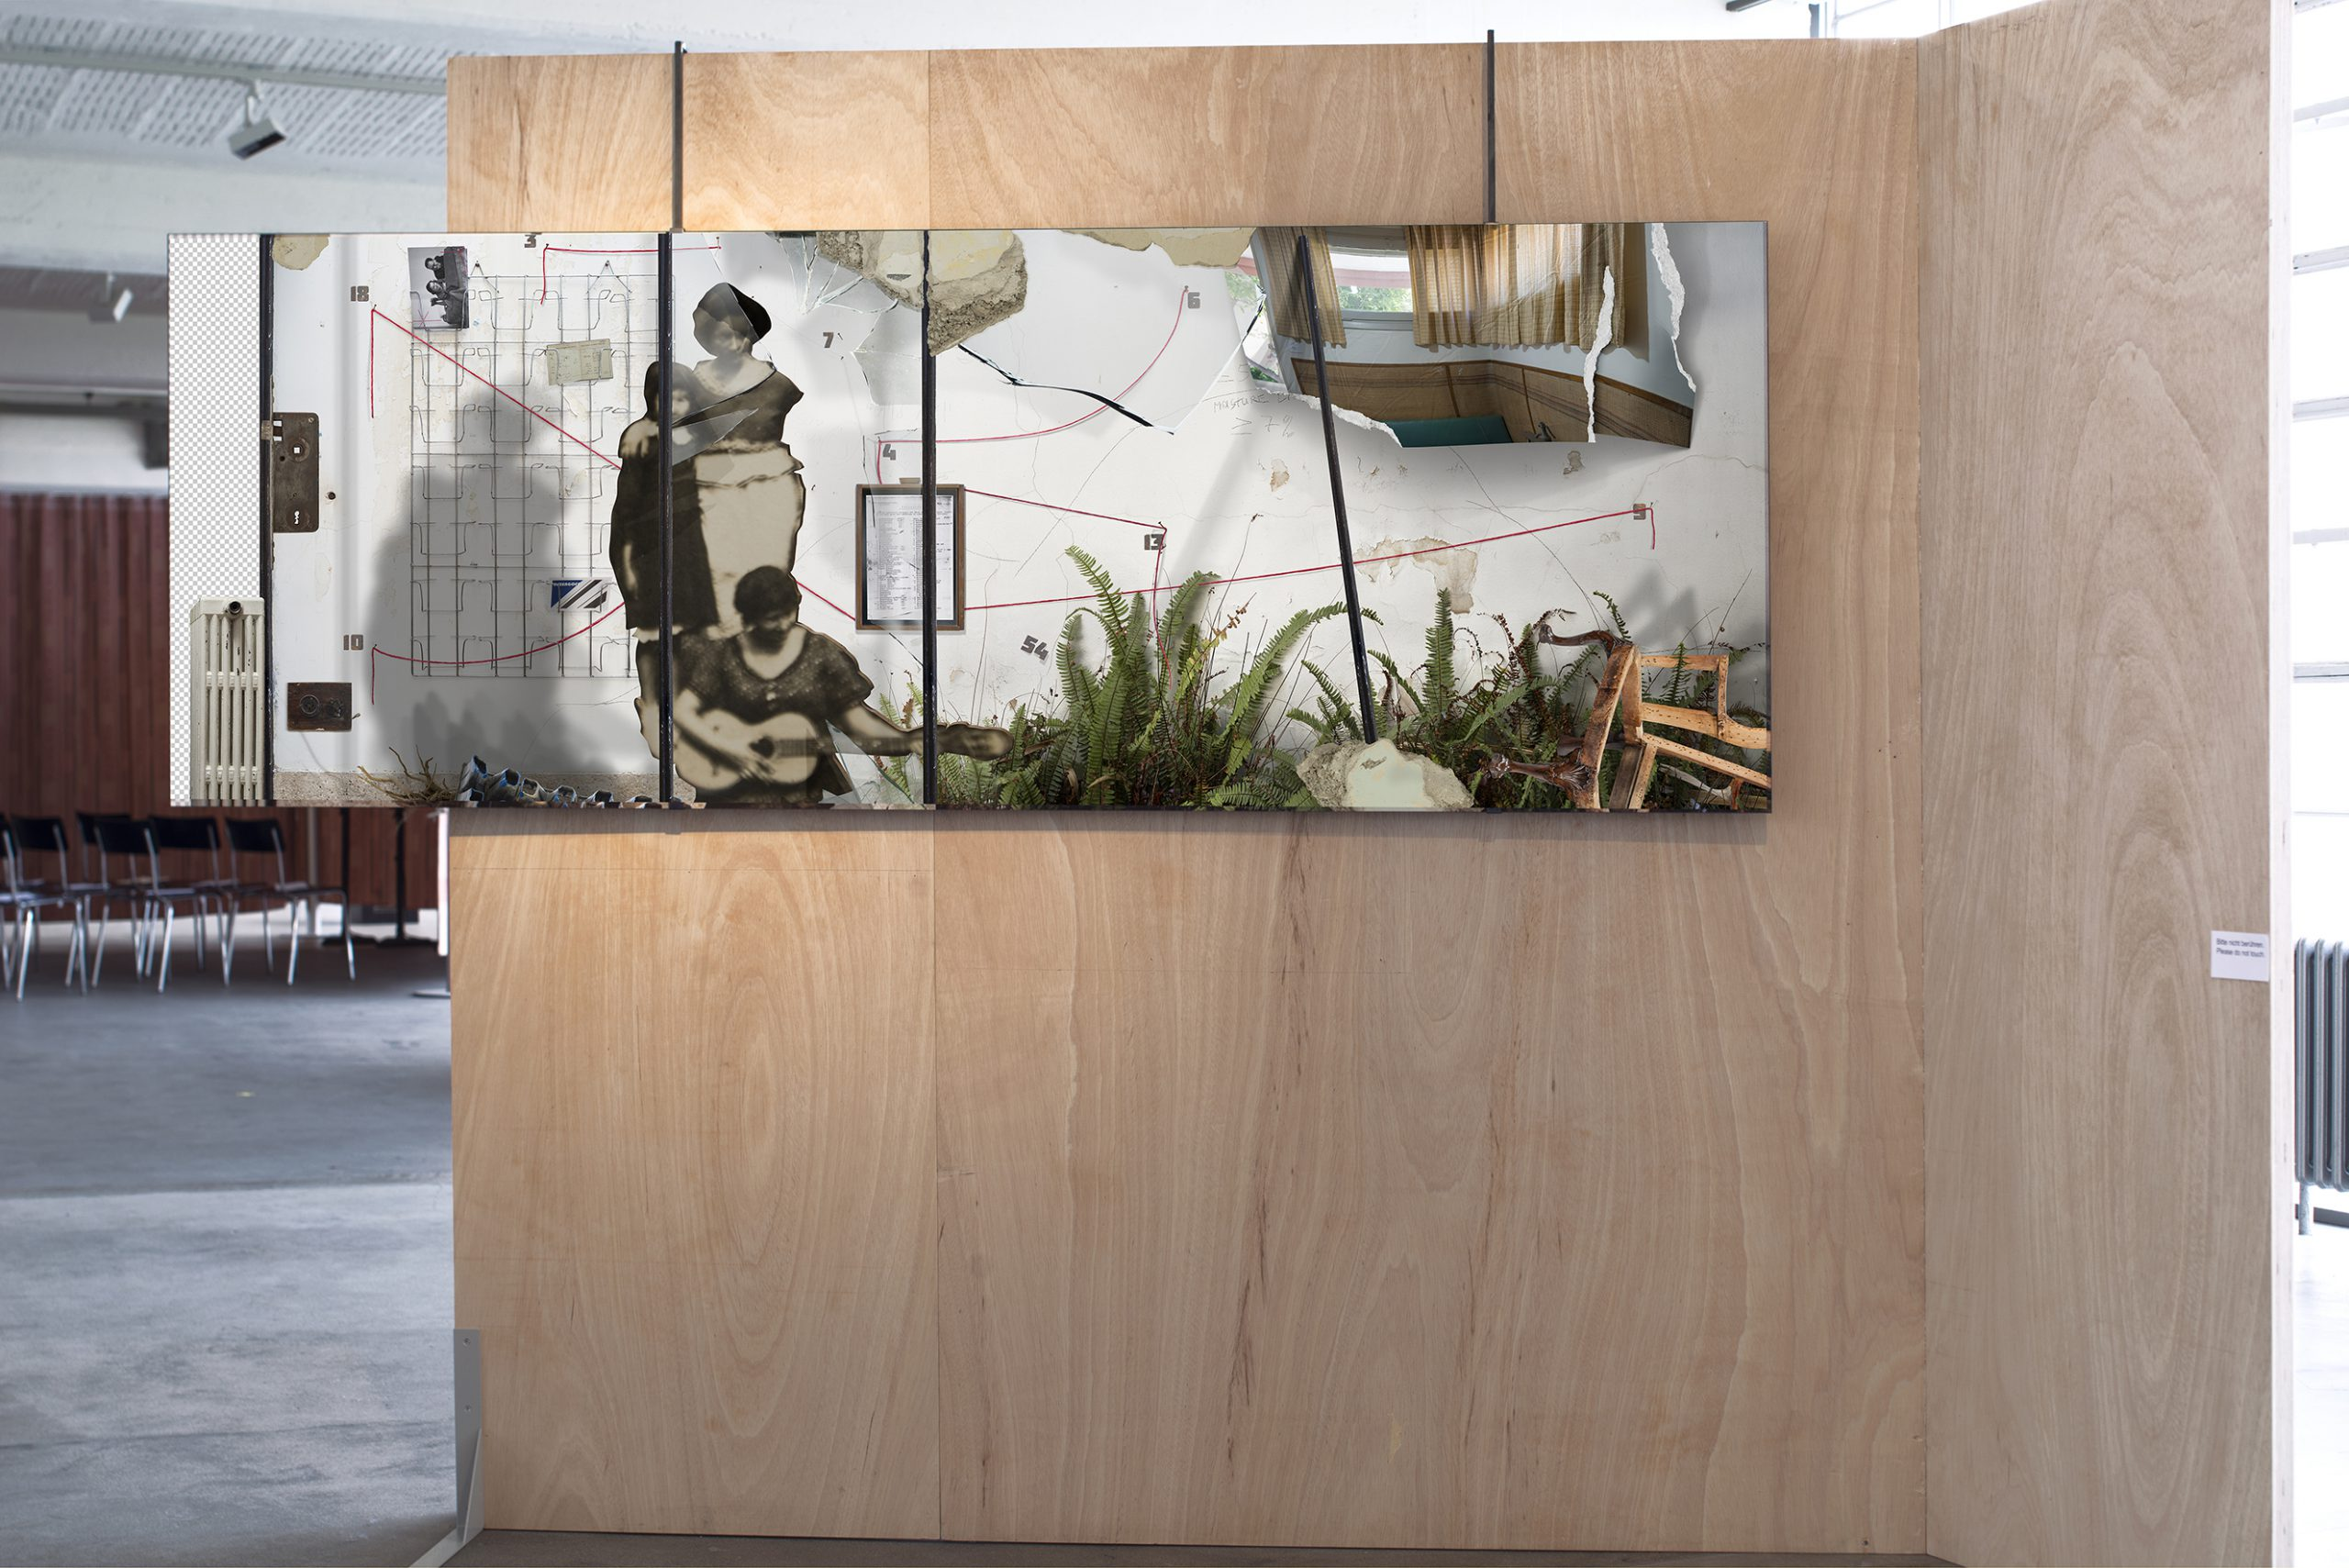 Ilit Azoulay, Transfer Agreement (Forget Me Not), installation view, Bauhaus Dessau 2019